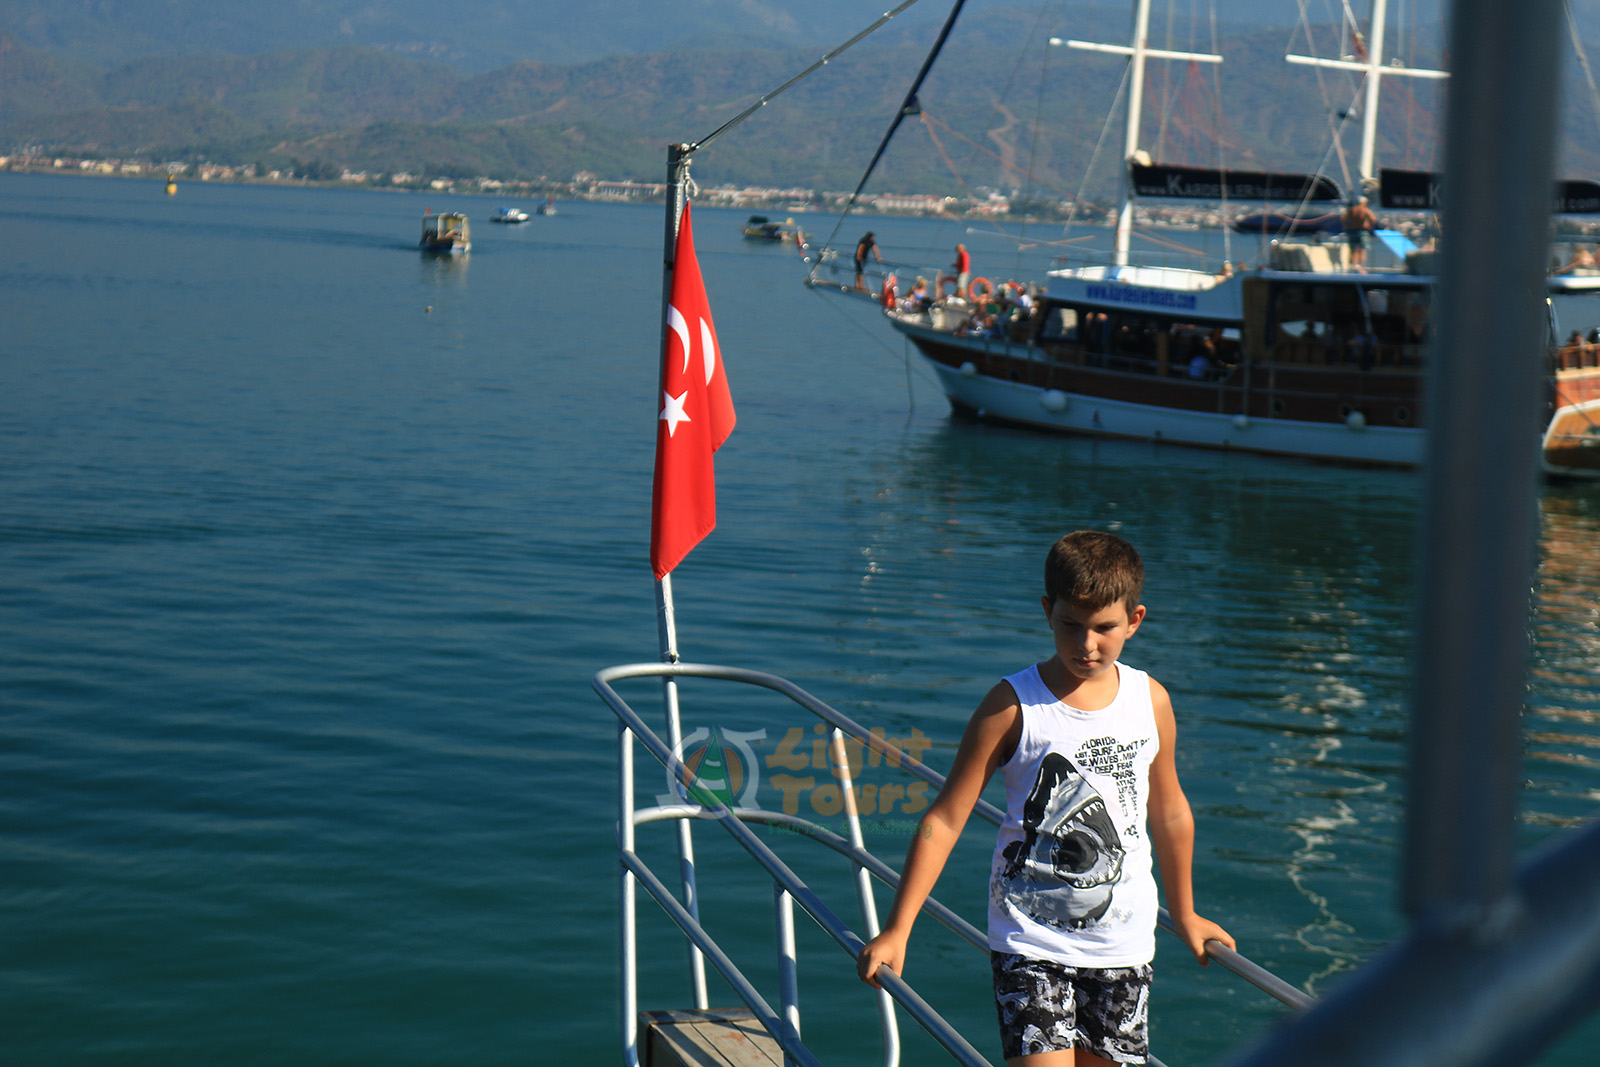 12 Islands Boat Tour, Fethiye, Rabbit Island, Gocek Island, Yassica Island, Aquarium Bay, Red Island,Light Tours Daily Tours, Discount Tours, Package Tours 370